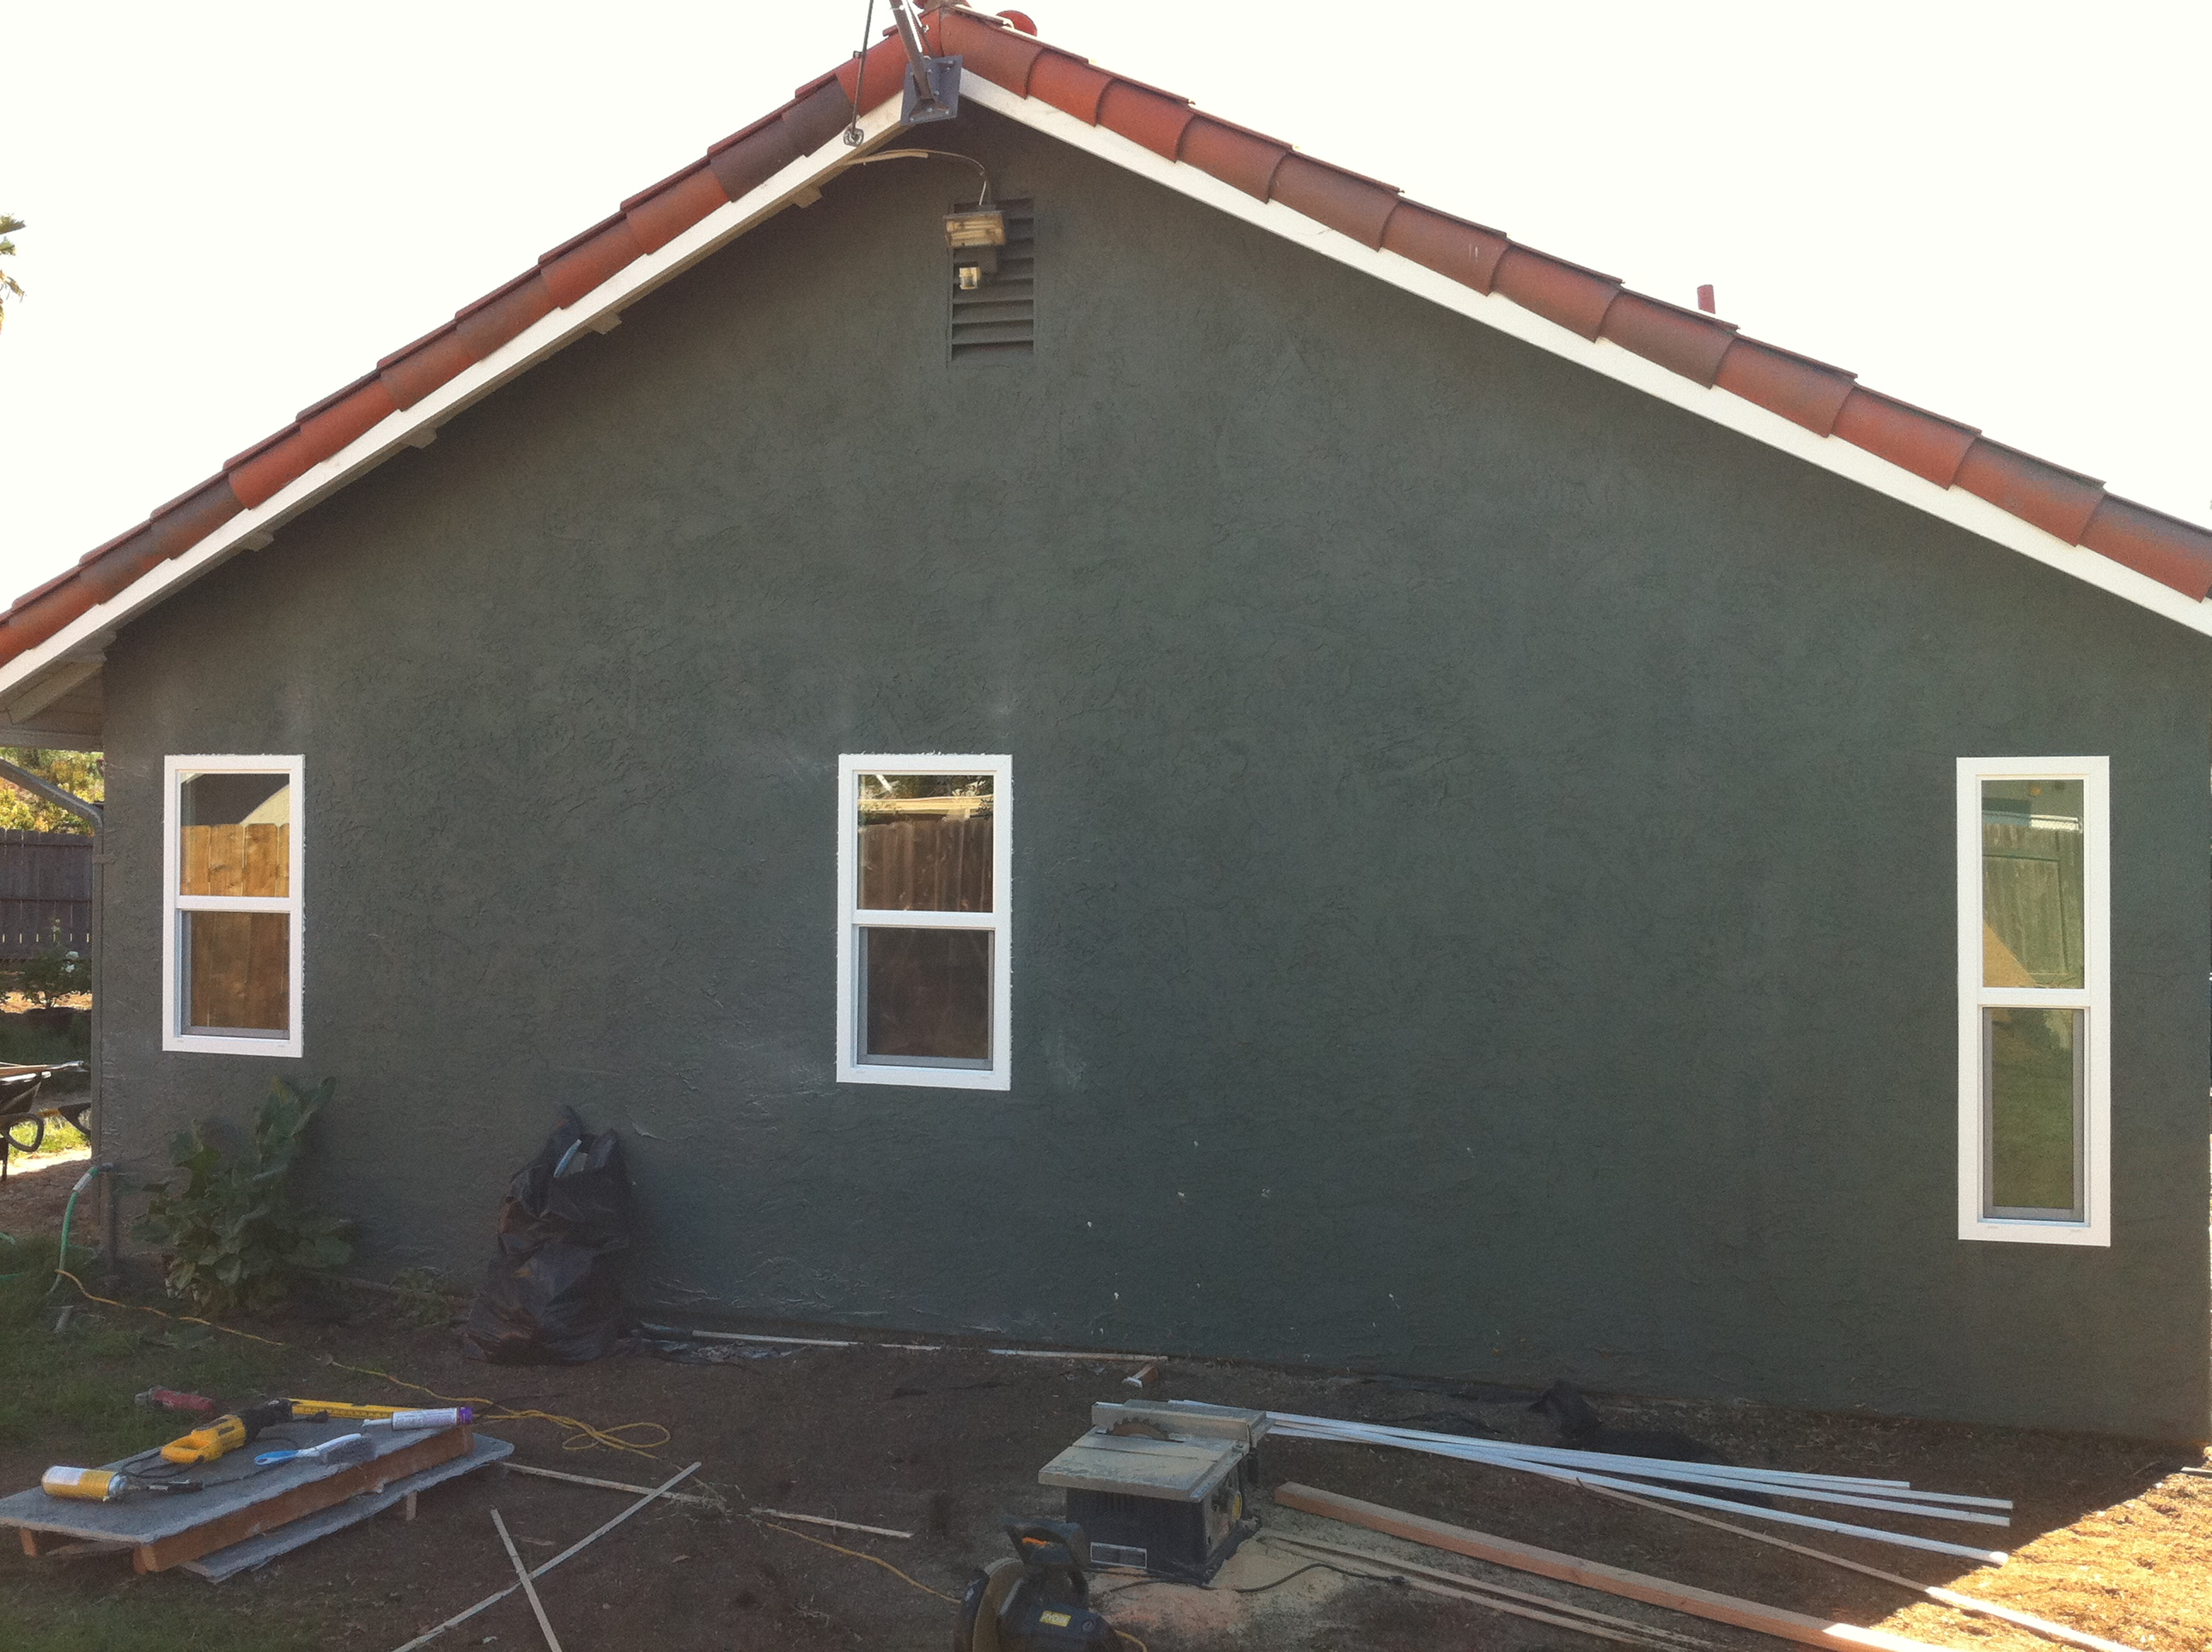 after the cut in, outside view, no stucco damage